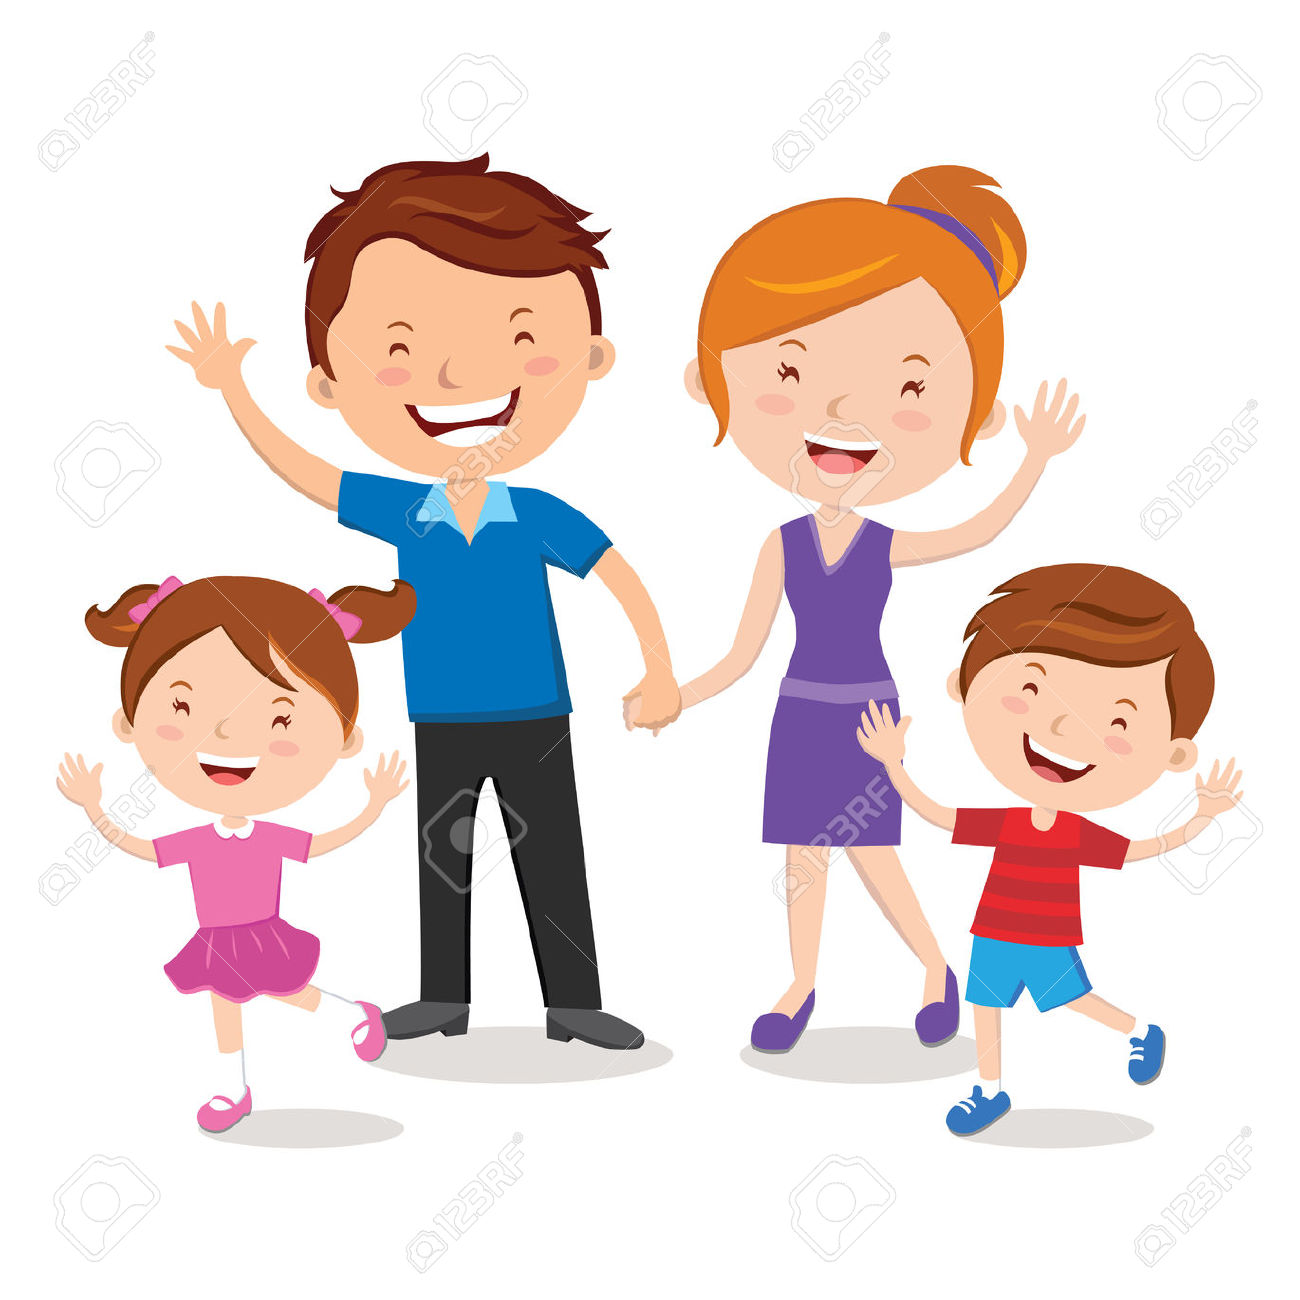 Clipart faimly picture transparent stock Cartoon Family Clipart | Free download best Cartoon Family Clipart ... picture transparent stock